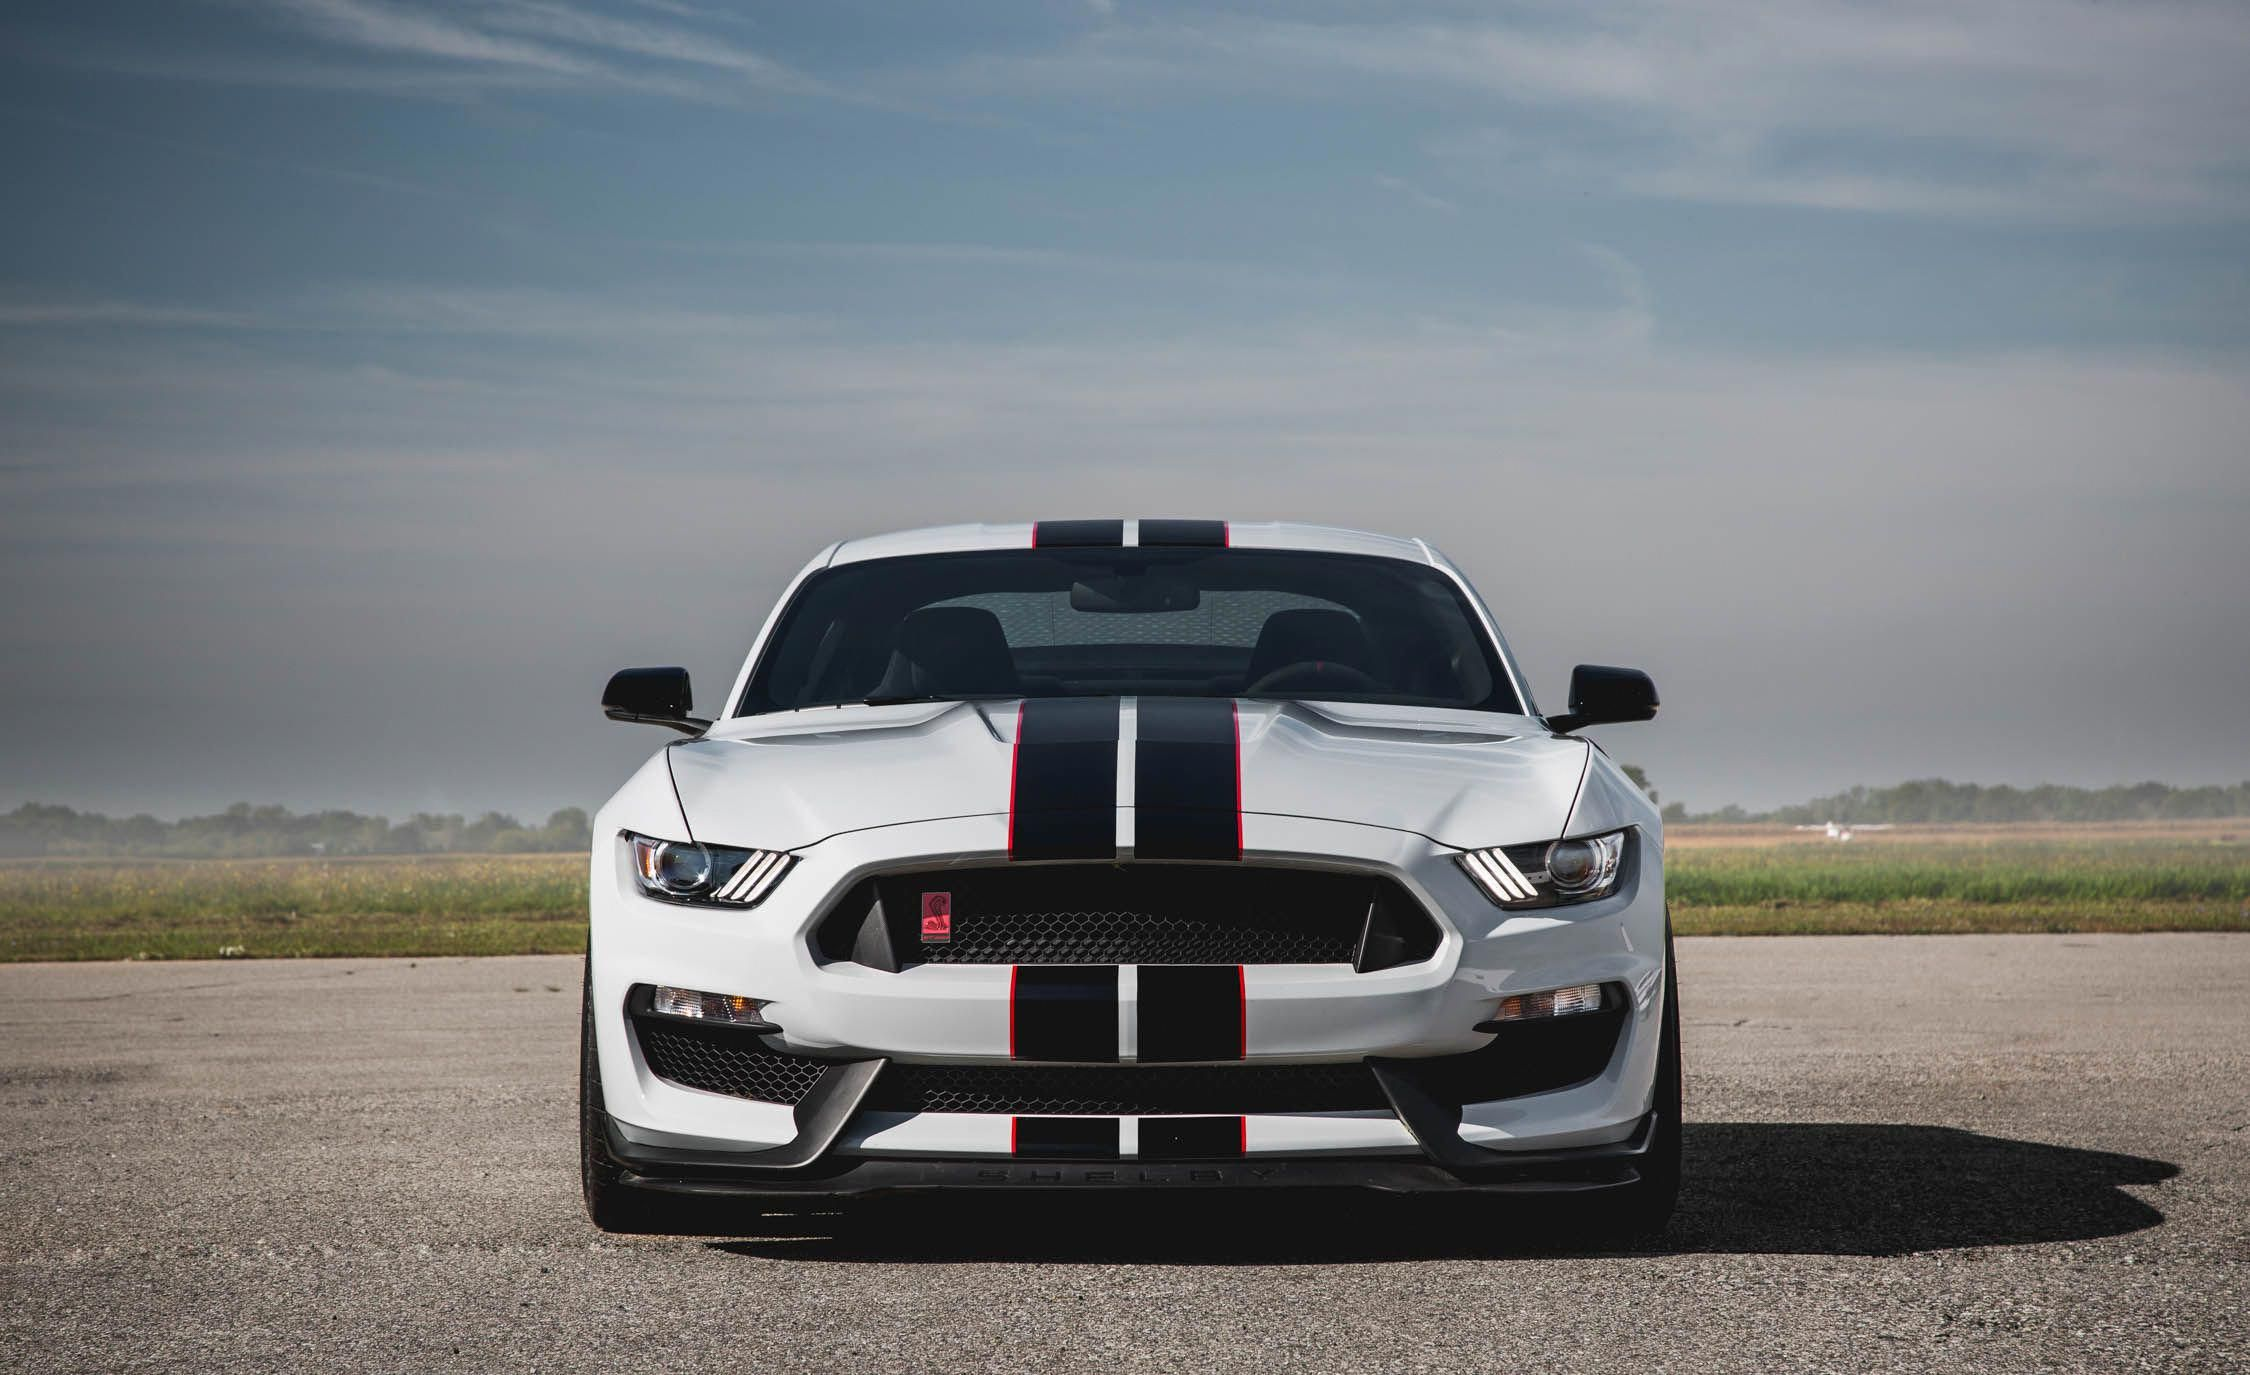 Muscle Cars Forever Mustang Shelby Ford Mustang Ford Mustang Shelby